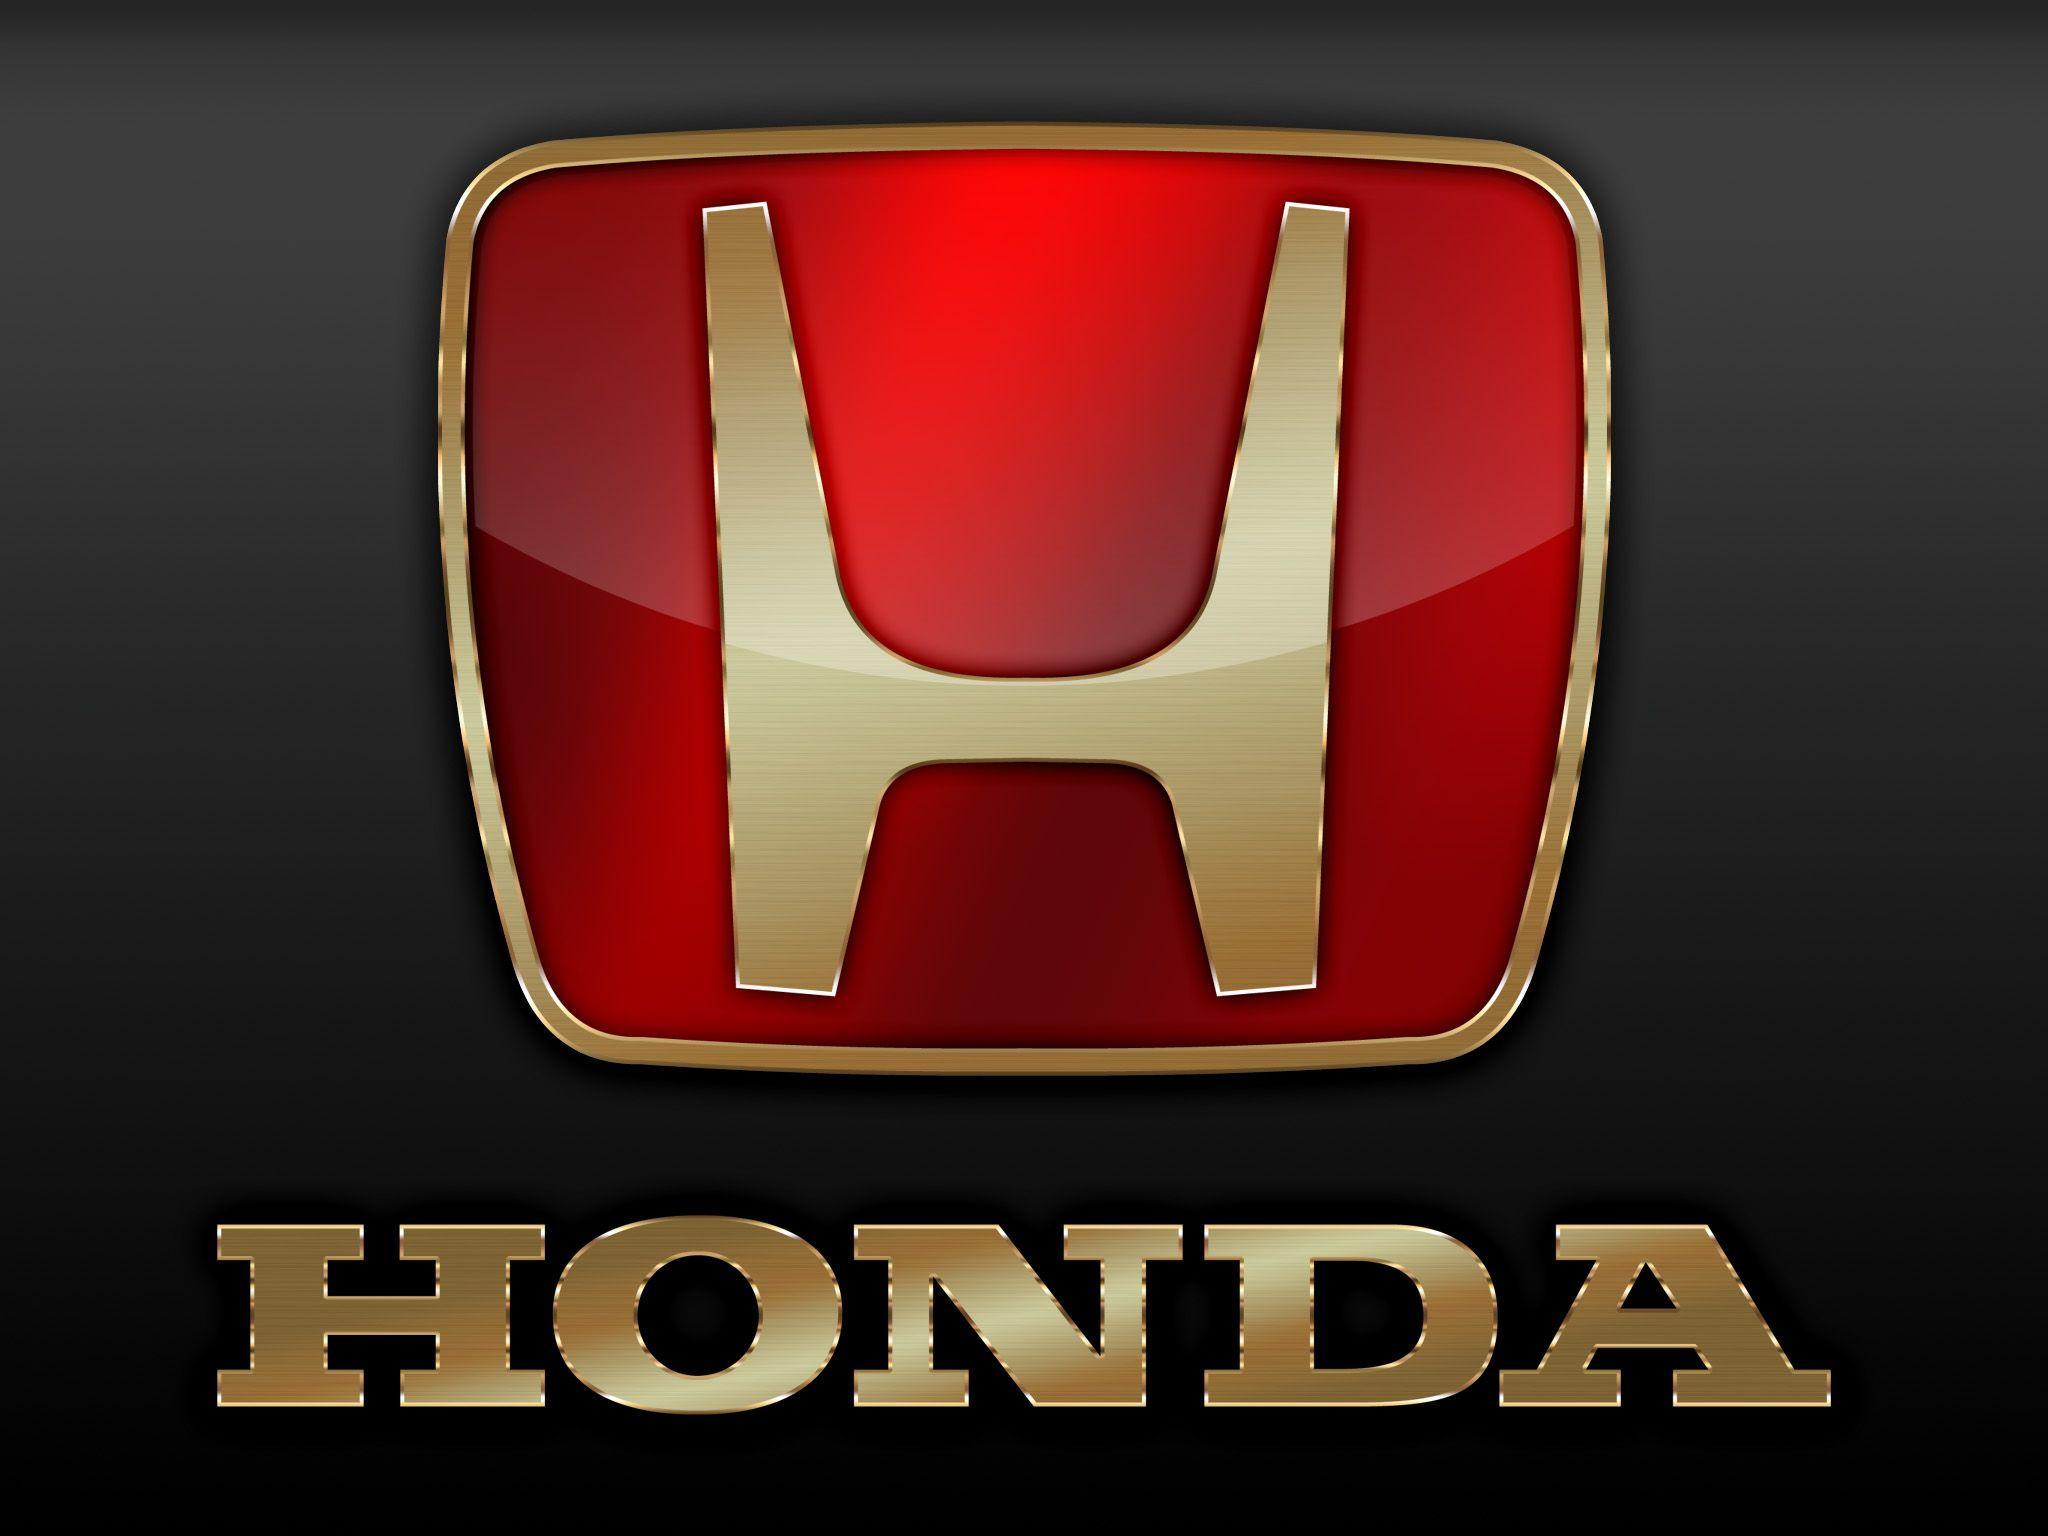 Honda Emblem Wallpaper Desktop Black